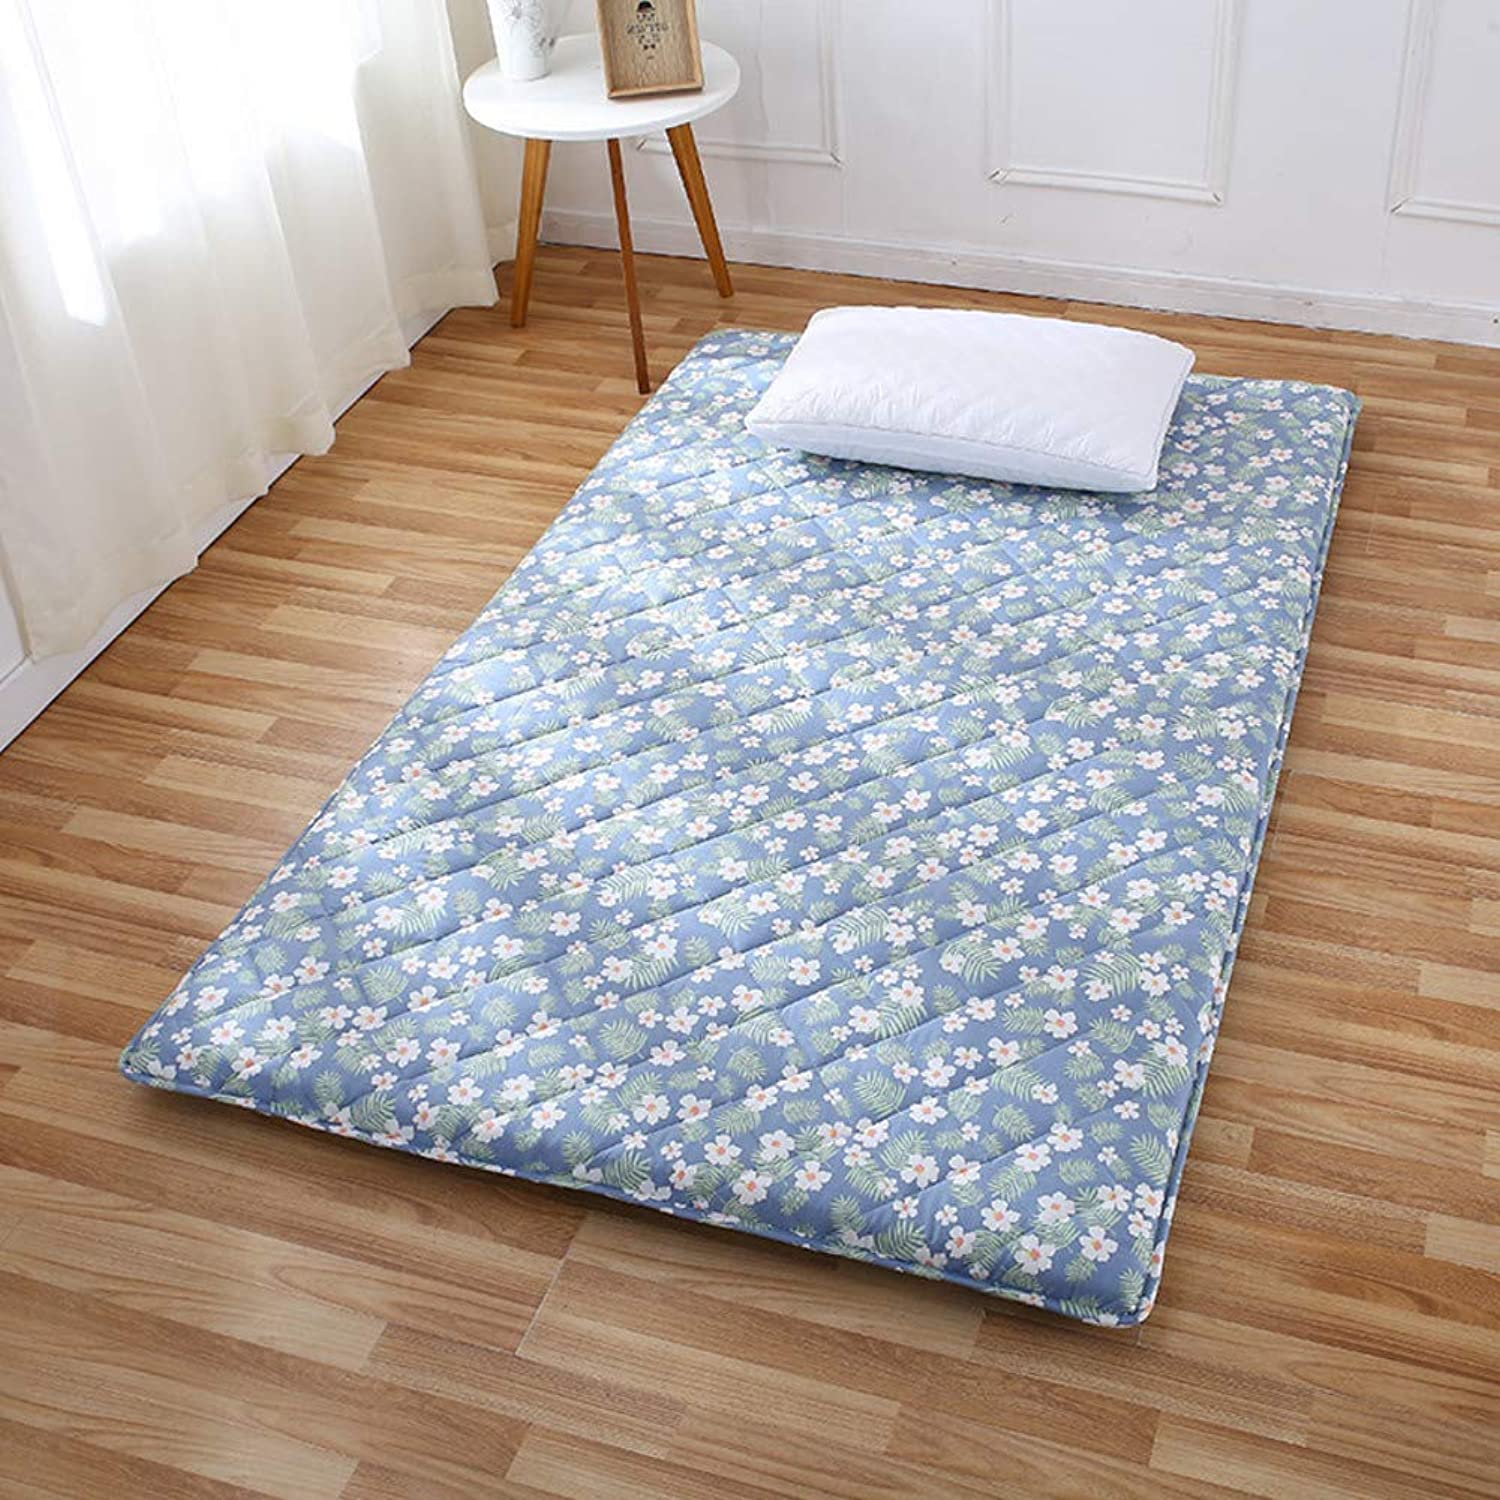 Foam Tatami Floor Mattress,Cotton Quilted Floral Printed Foldable Hypoallergenic Bed Mattress pad Predector for Dorm -bluee 90x190cm(35x75inch)